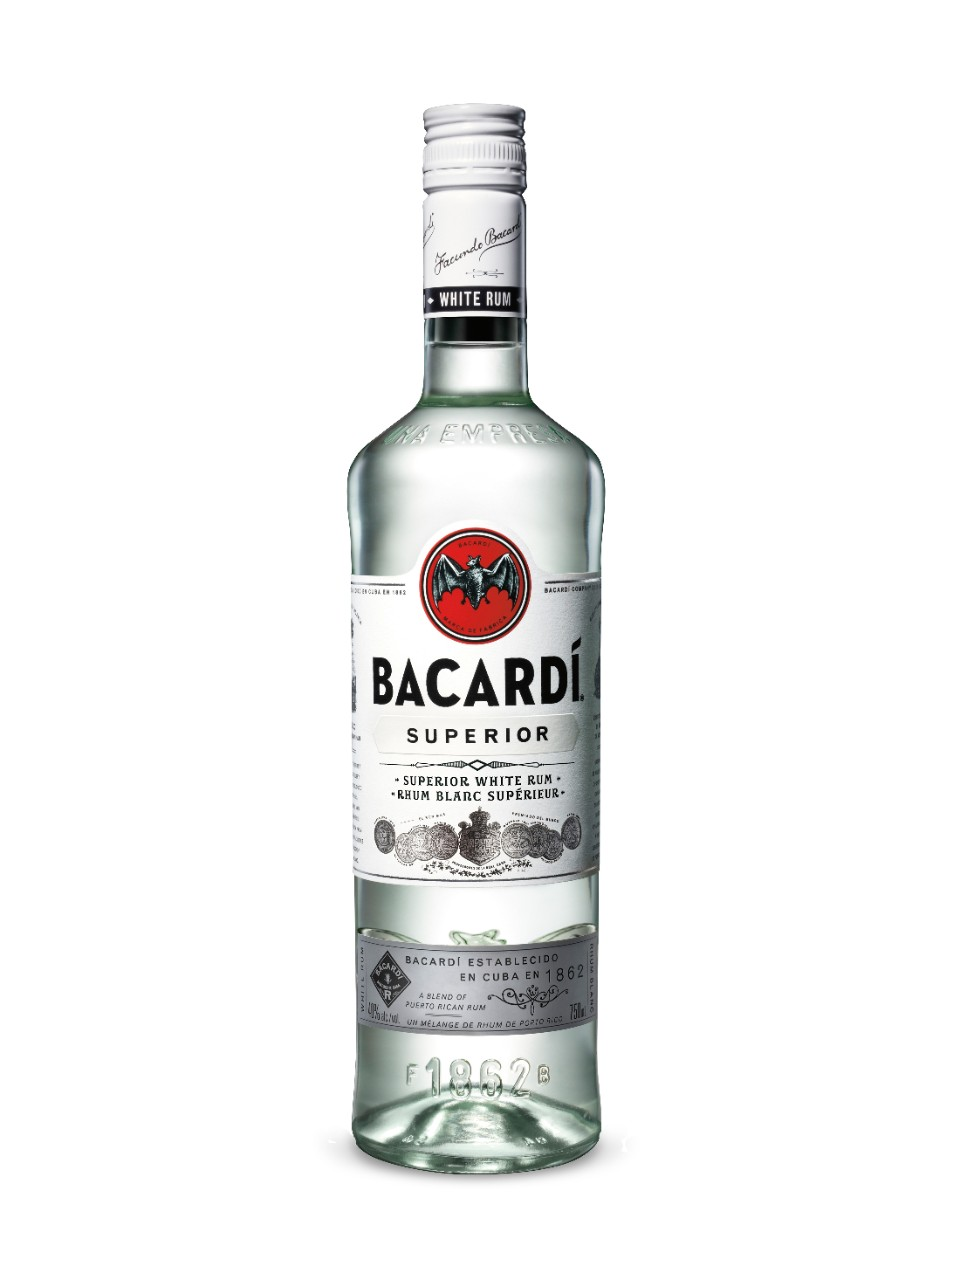 HQ Bacardi Wallpapers | File 88.27Kb